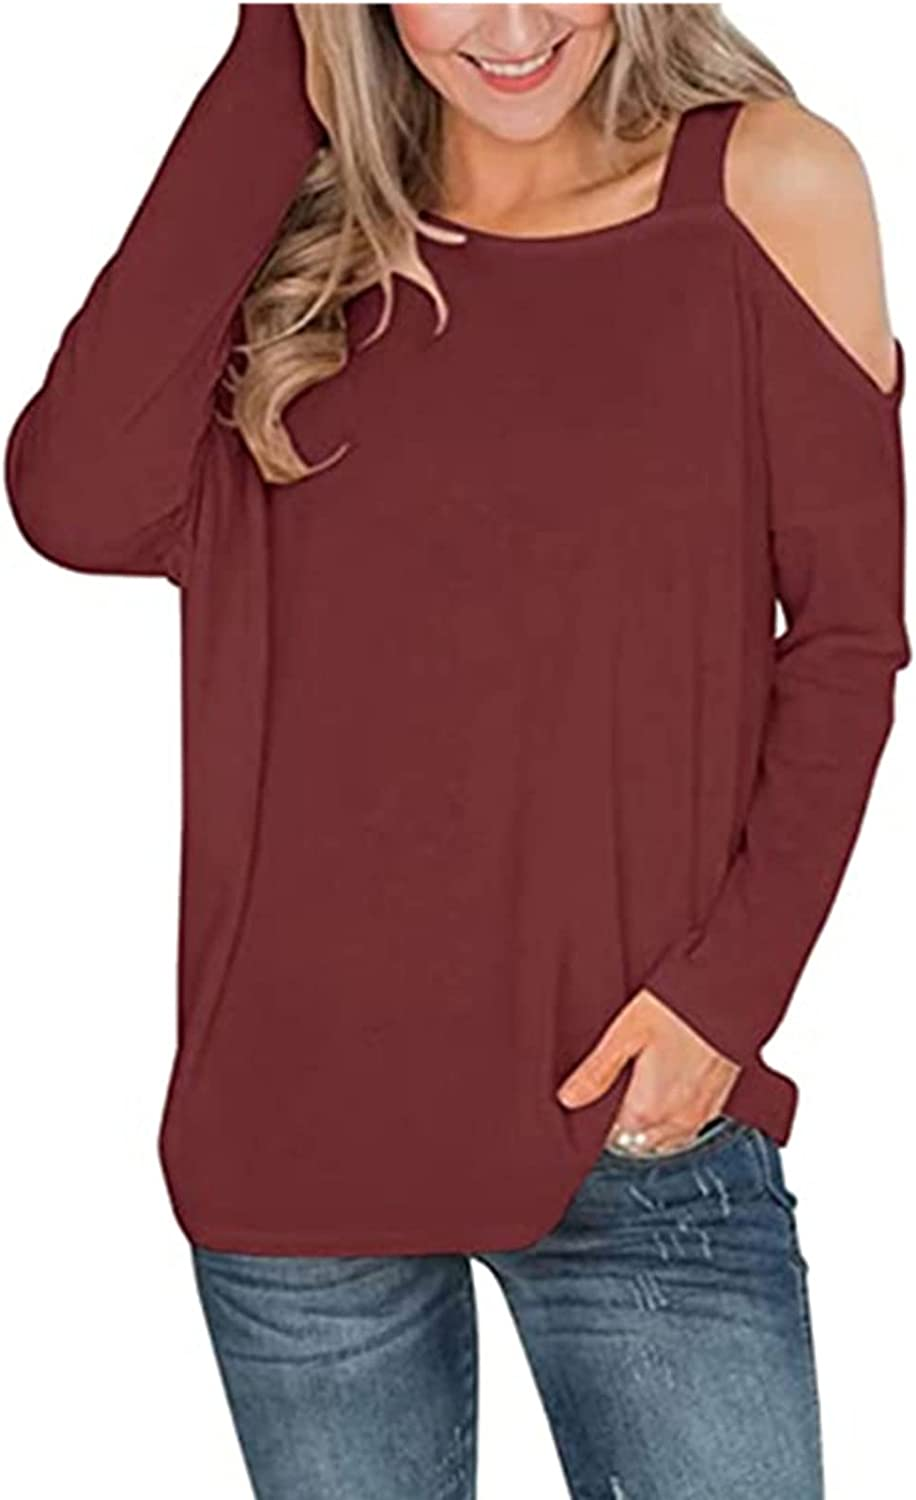 TIMIFIS Off The Shoulder Tops for Women Long Sleeve Tunic Tops Casual Pullover Loose Fit Shirts Solid Color Blouse